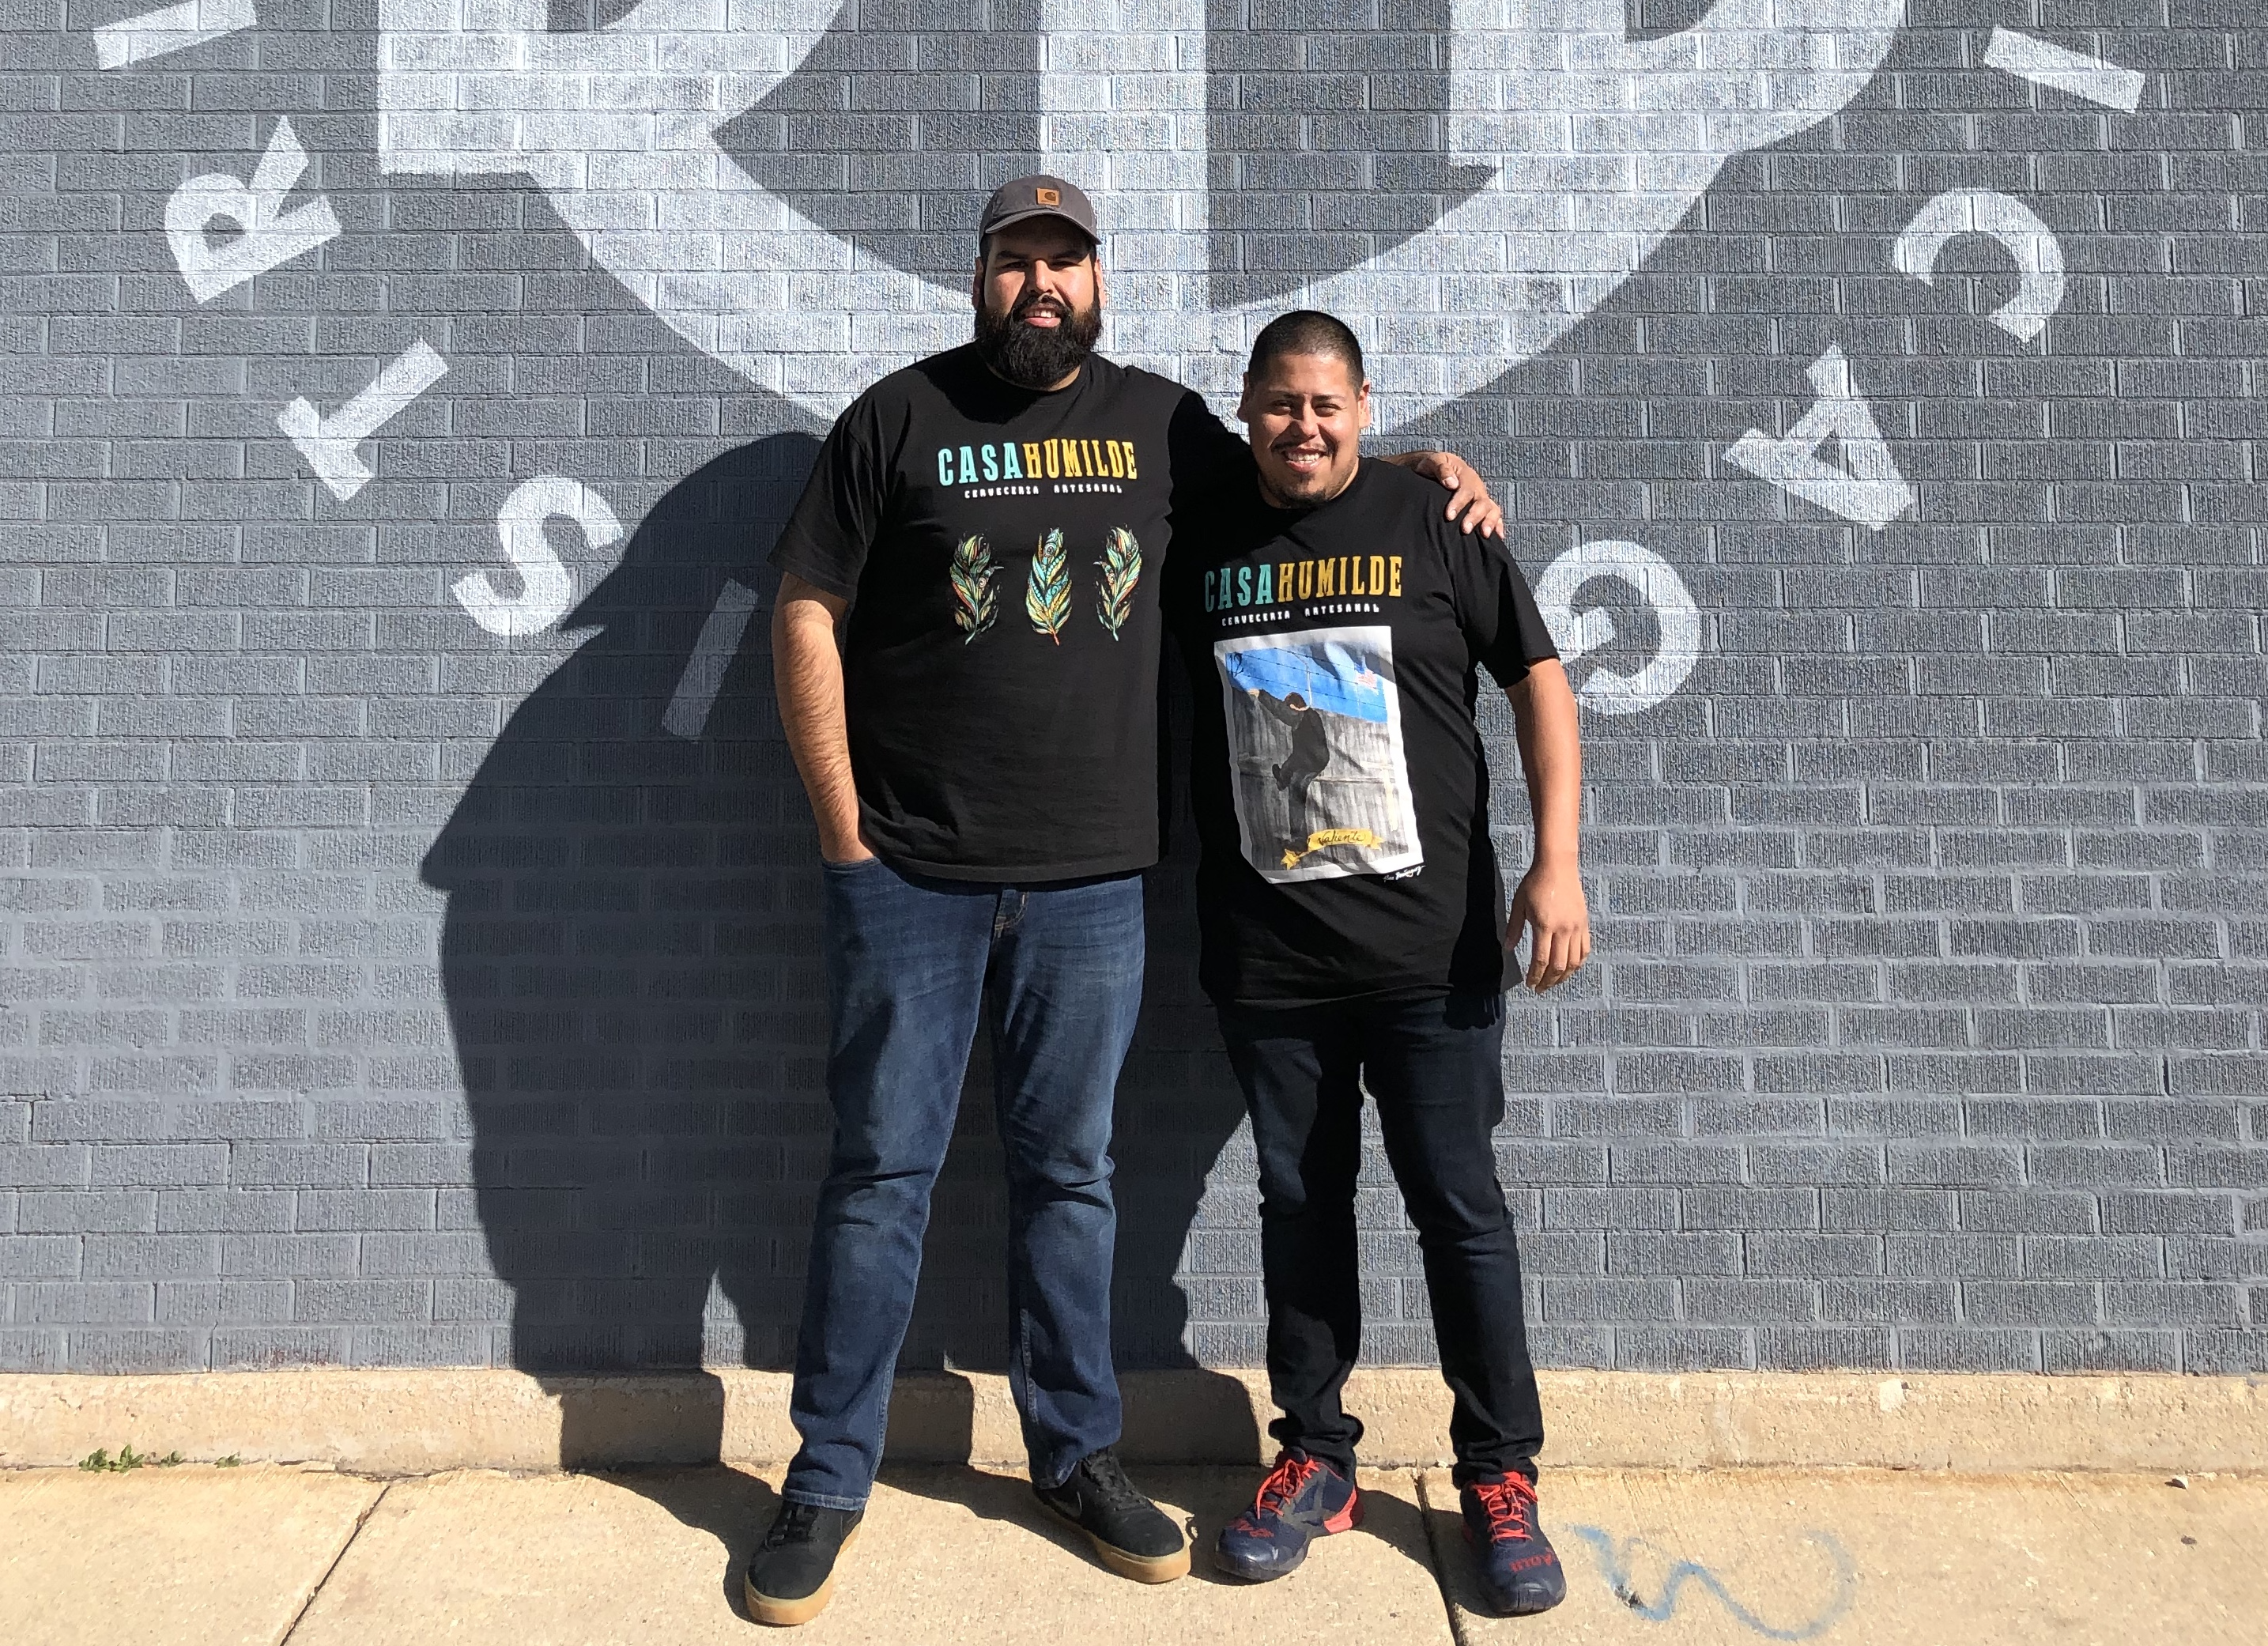 A pair of brothers posing together in front of a brick wall.